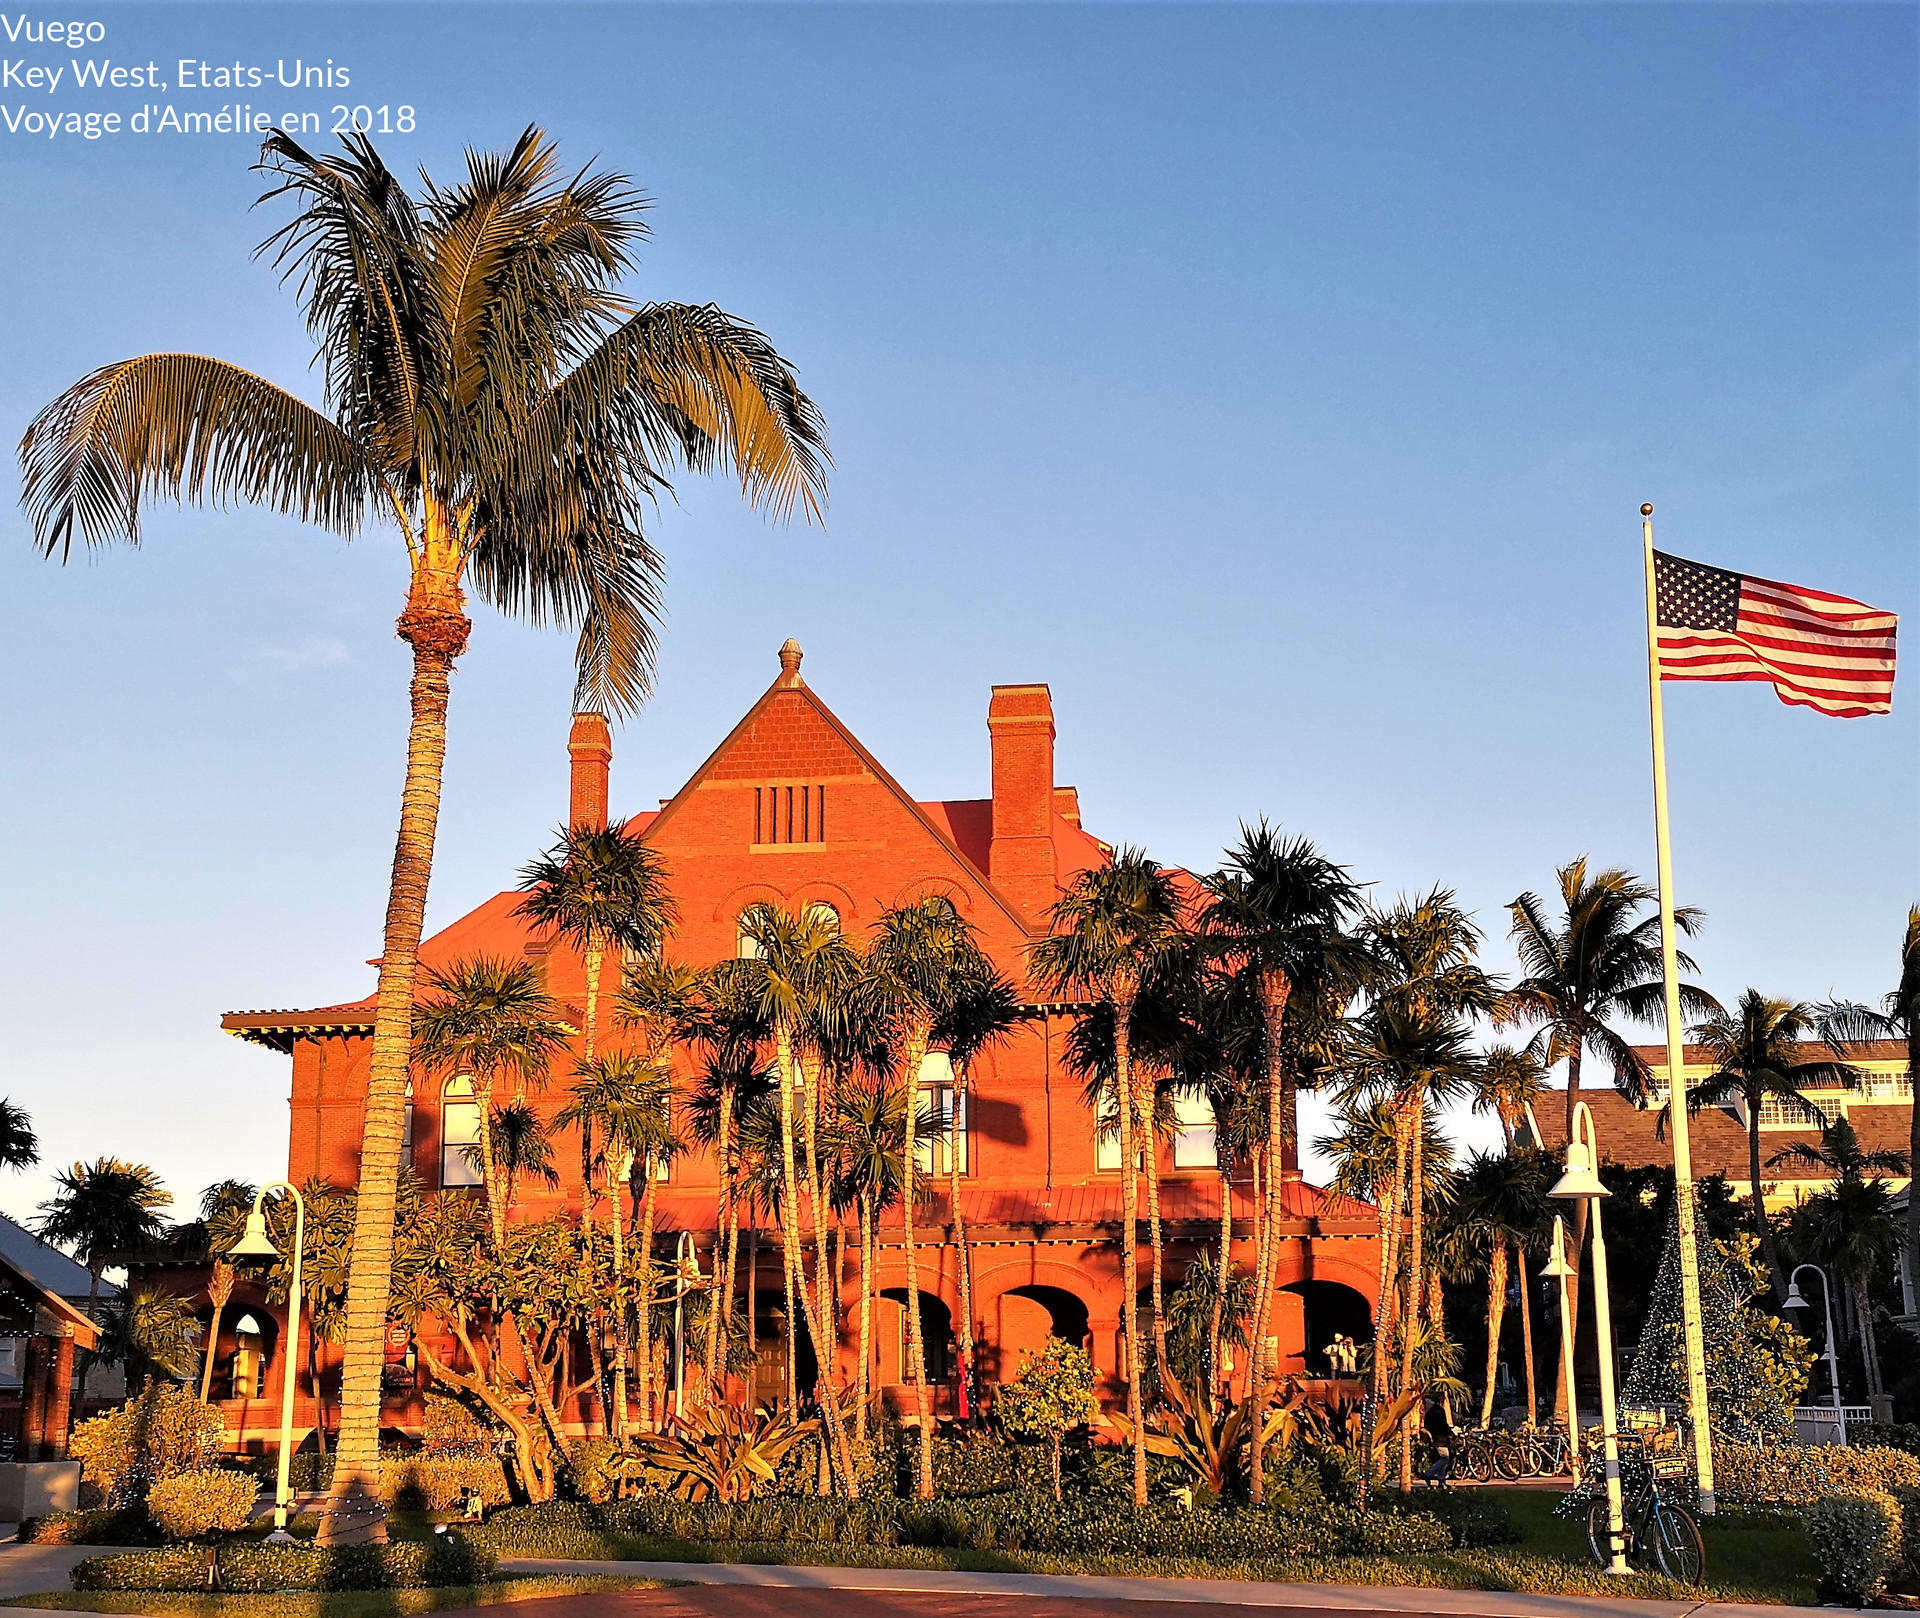 Key West, Etats-Unis